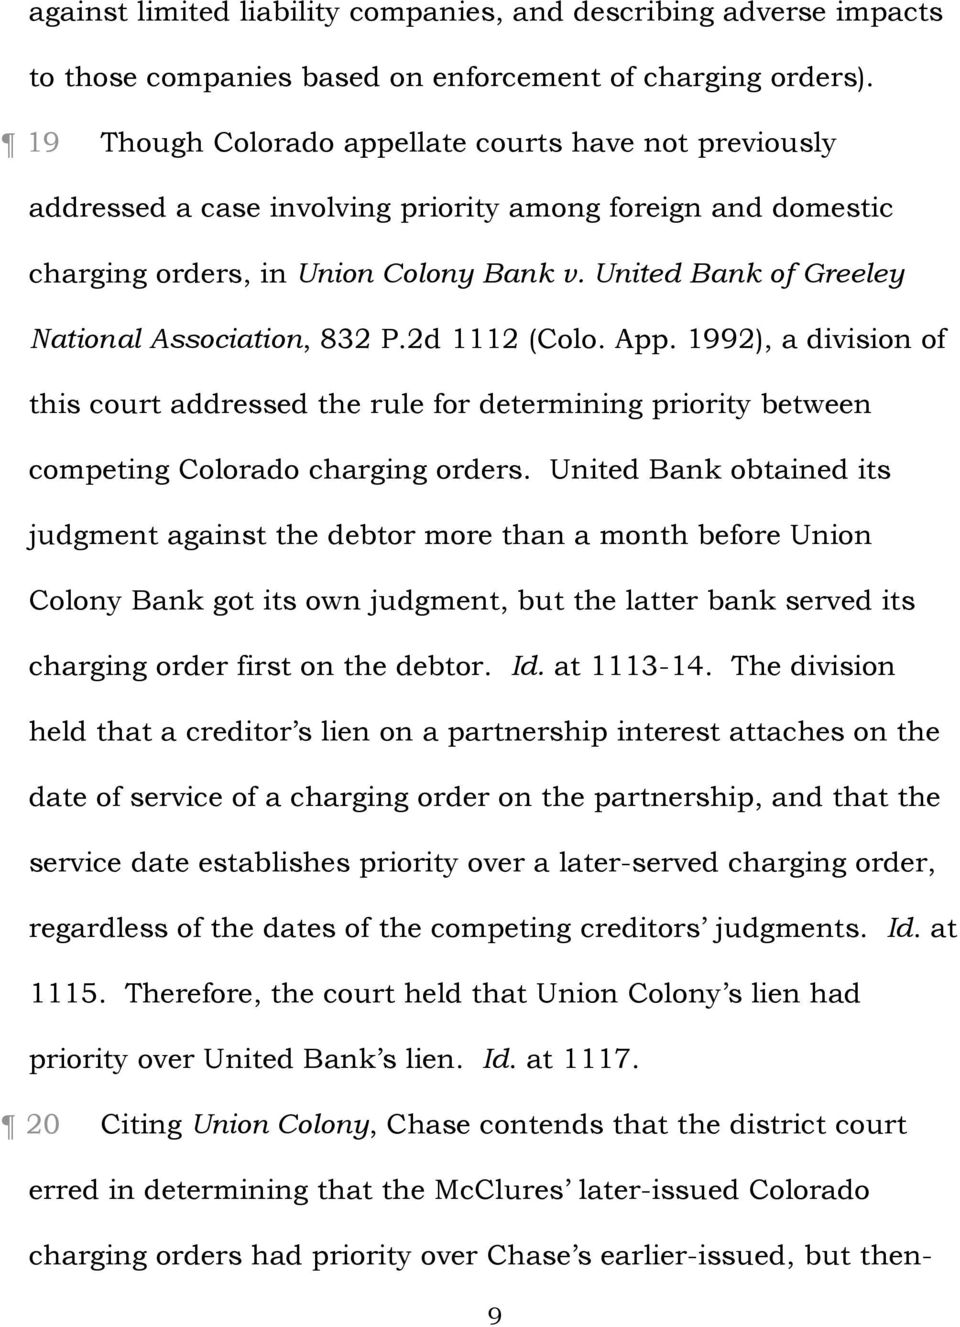 United Bank of Greeley National Association, 832 P.2d 1112 (Colo. App. 1992), a division of this court addressed the rule for determining priority between competing Colorado charging orders.